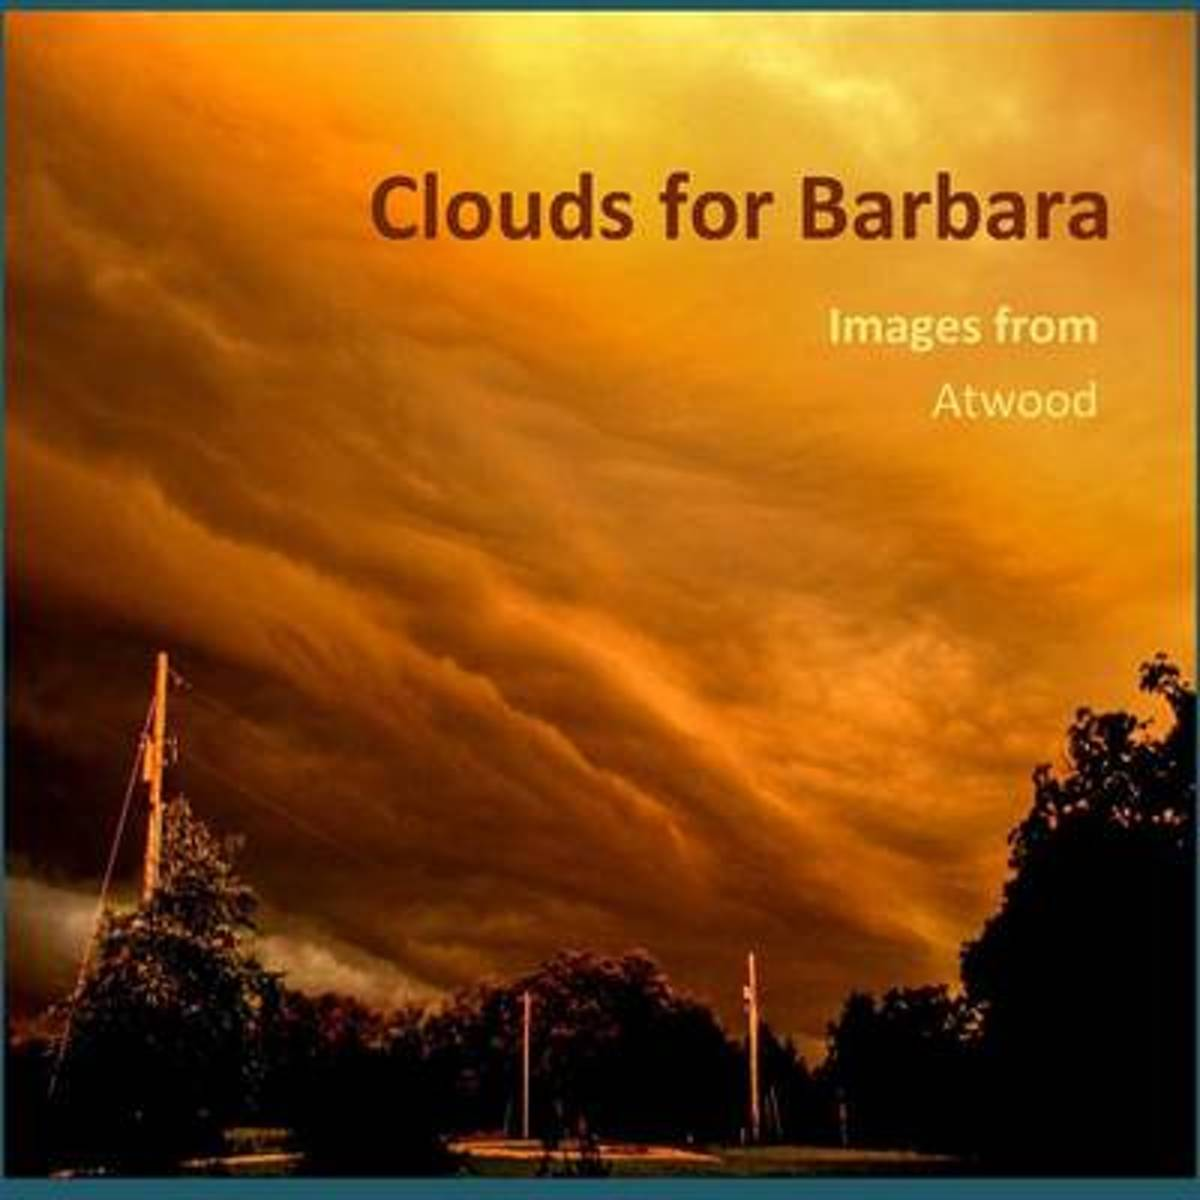 Clouds for Barbara - Images from Atwood